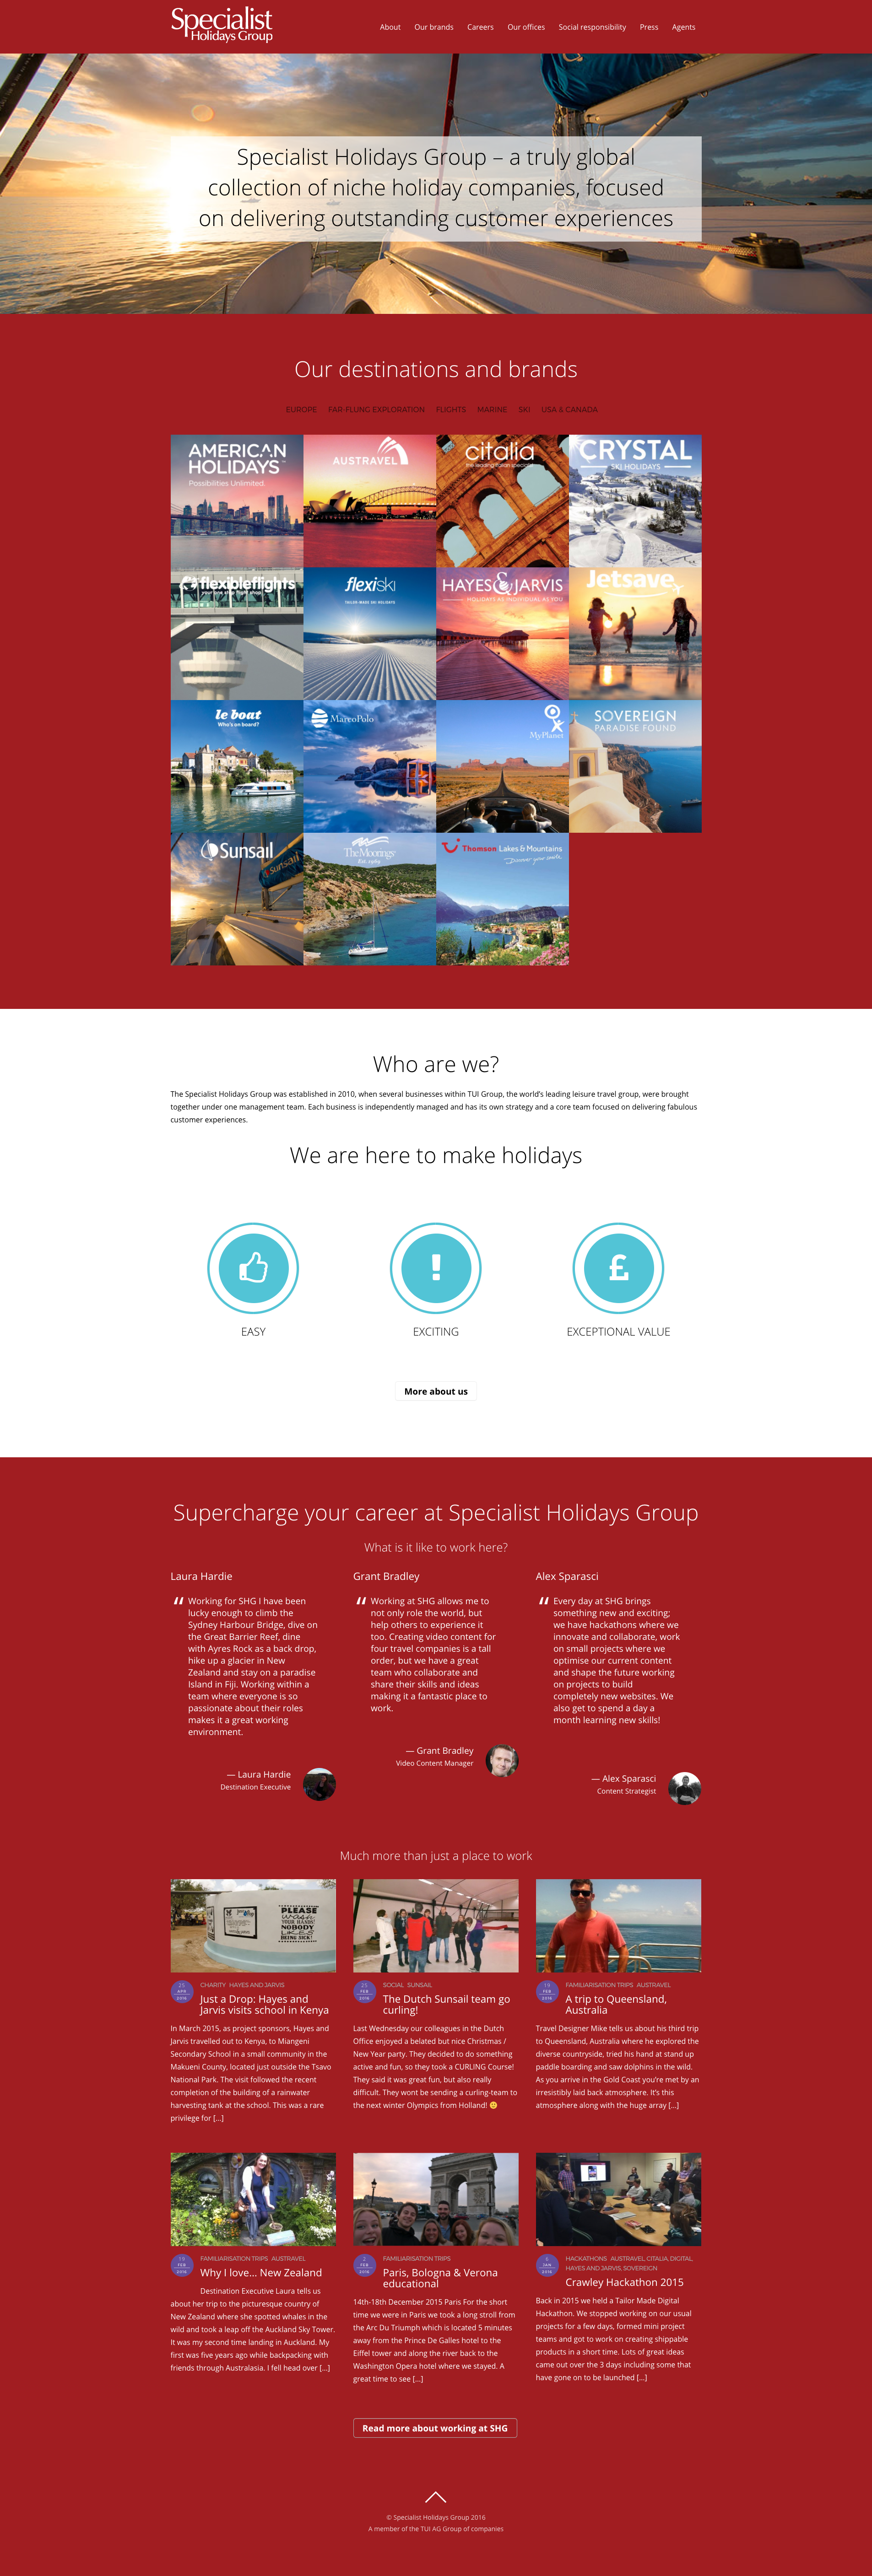 Specialist Holidays Group Full